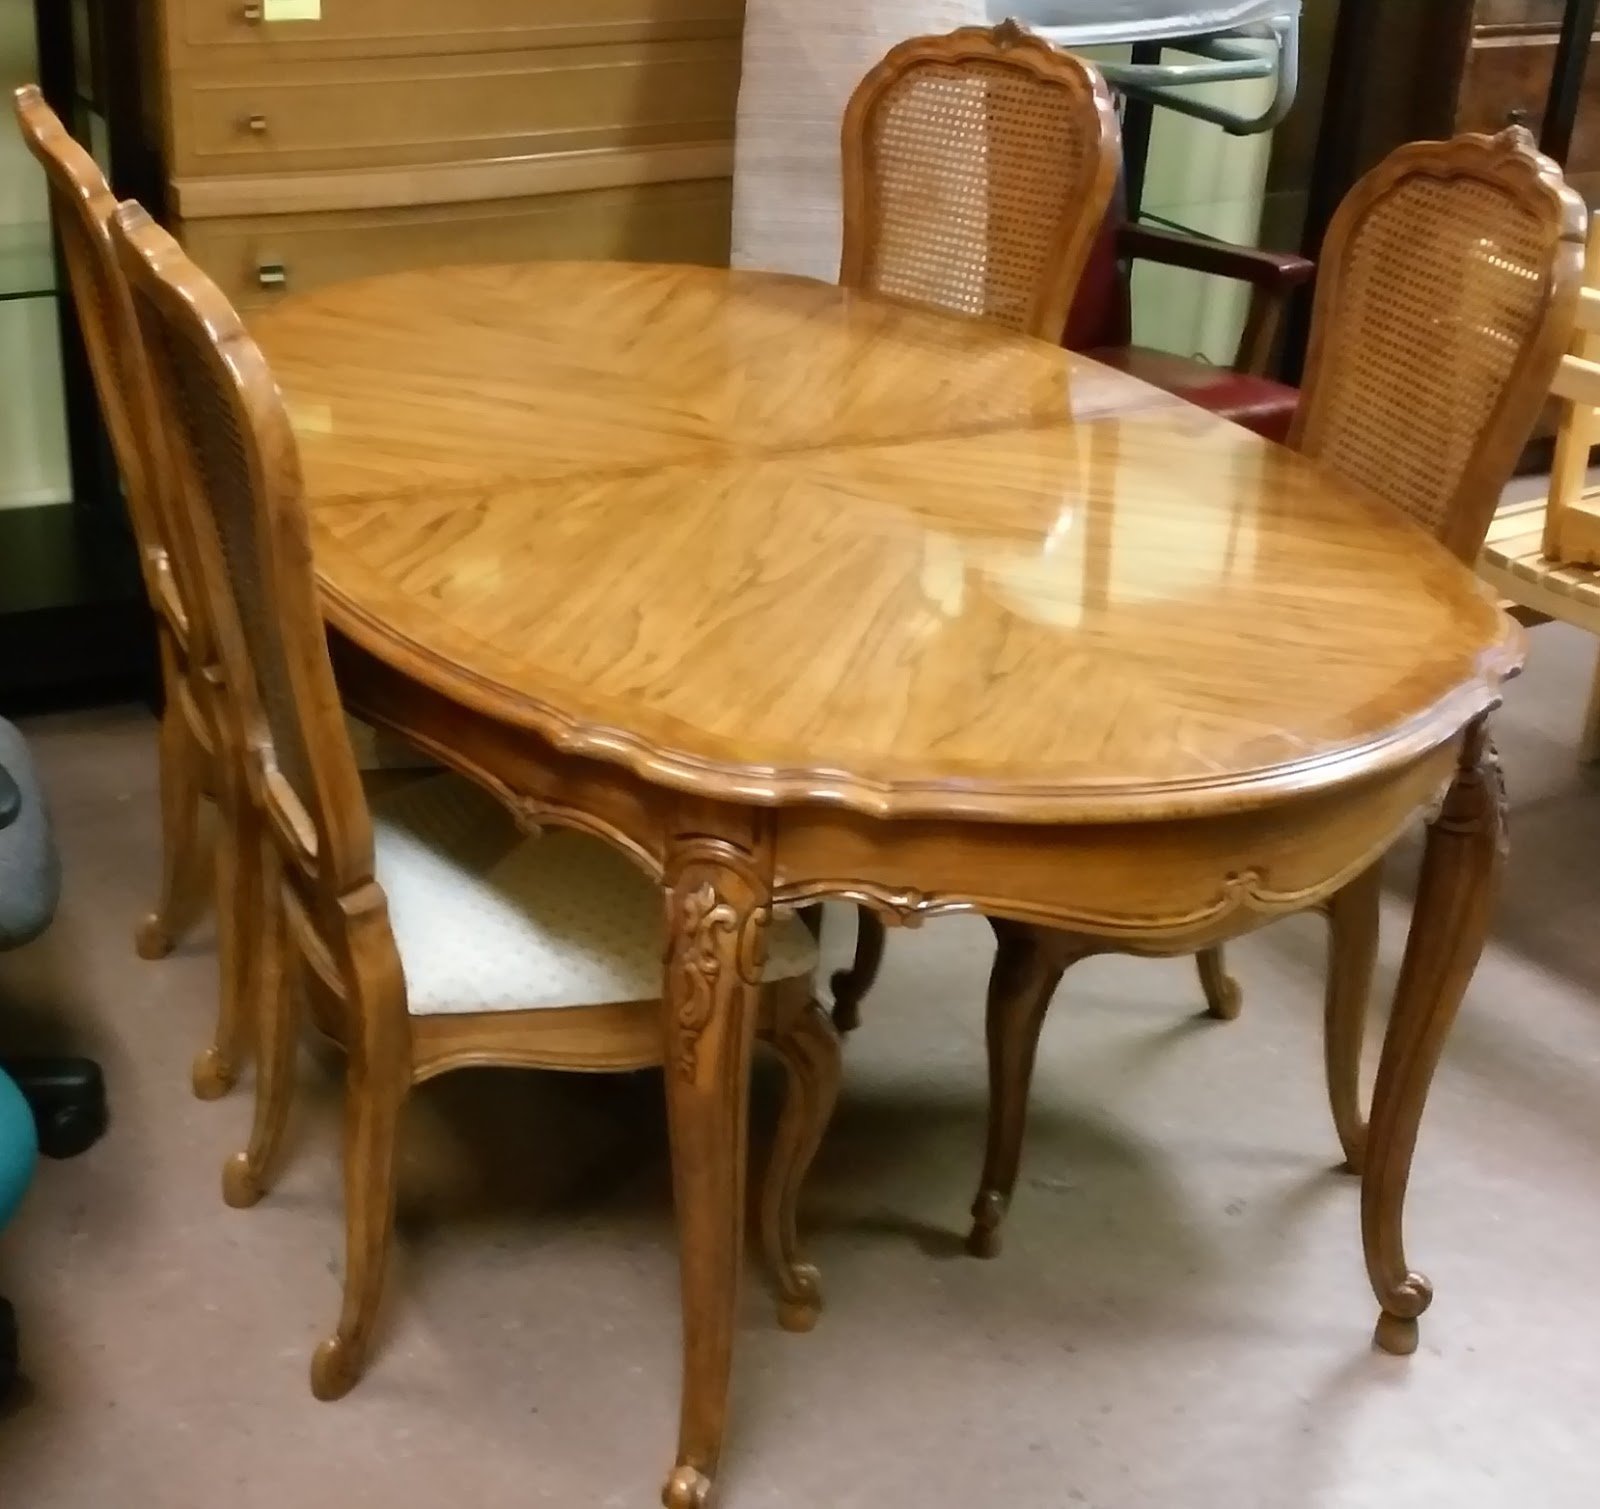 Thomasville Dining Room Furniture: UHURU FURNITURE & COLLECTIBLES: SOLD Thomasville French